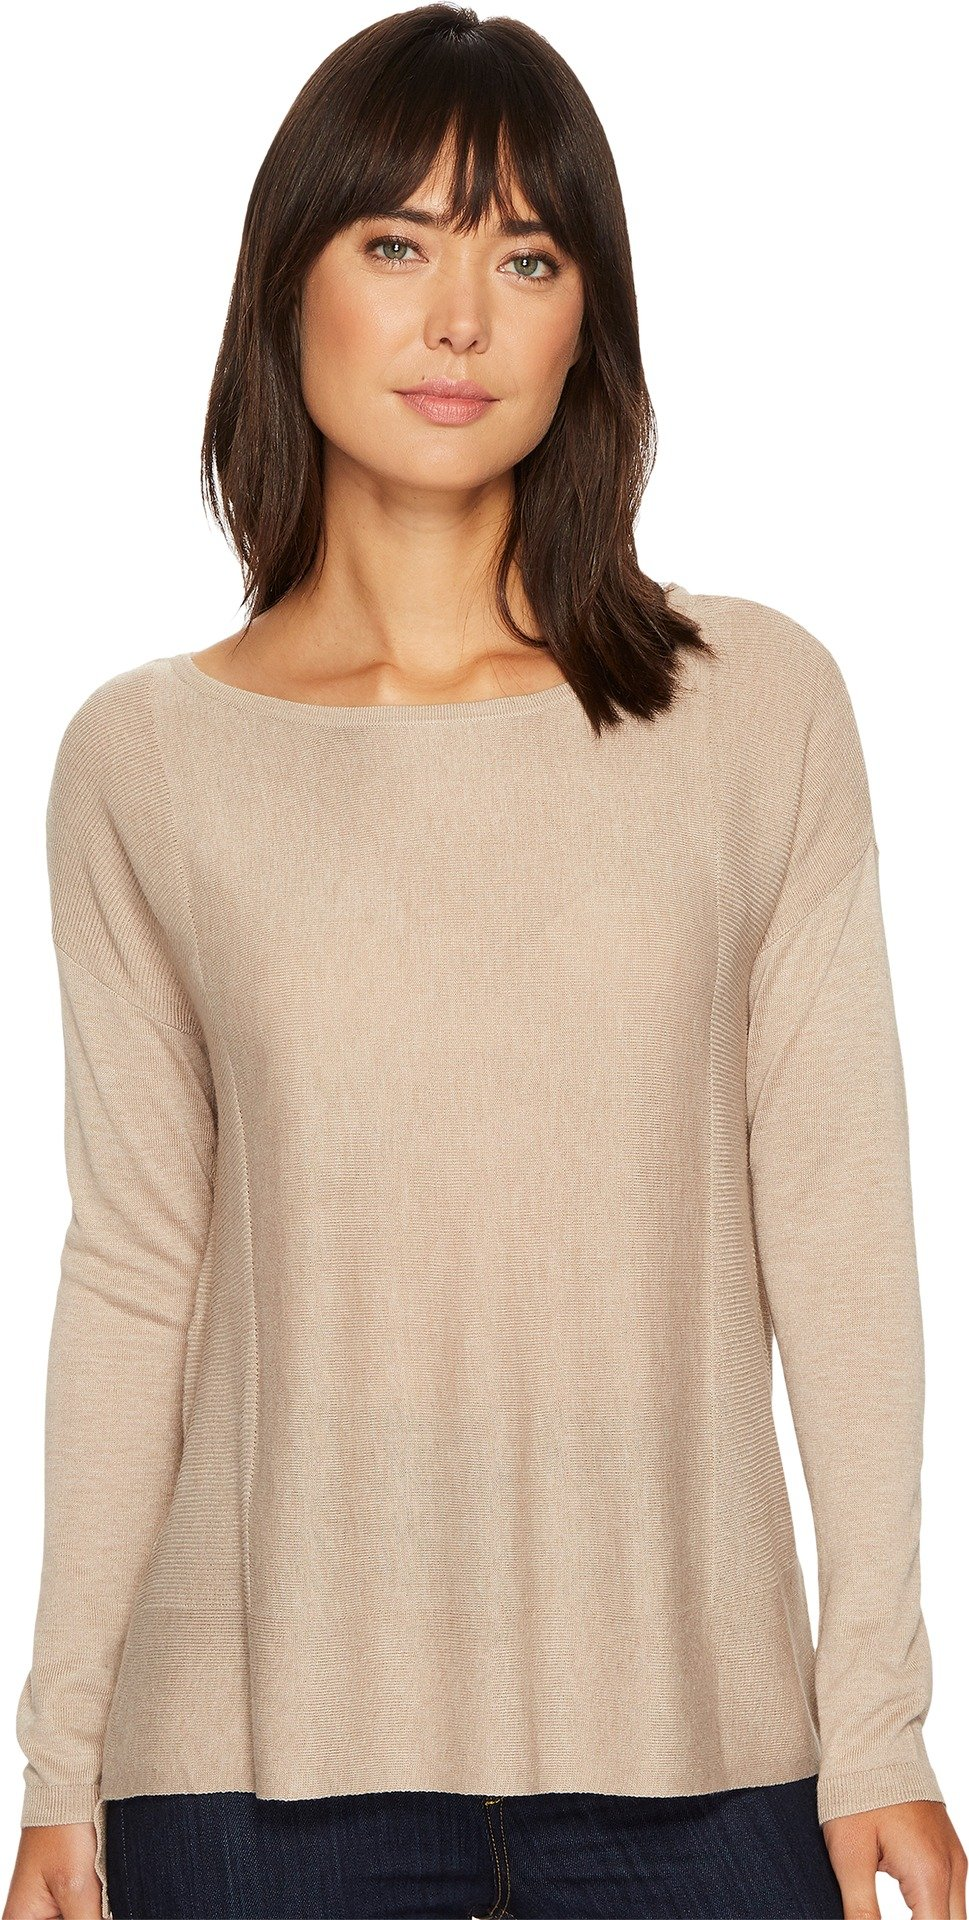 NYDJ Women's Boat Neck Sweater with Split Back, Taupe Heather, Large